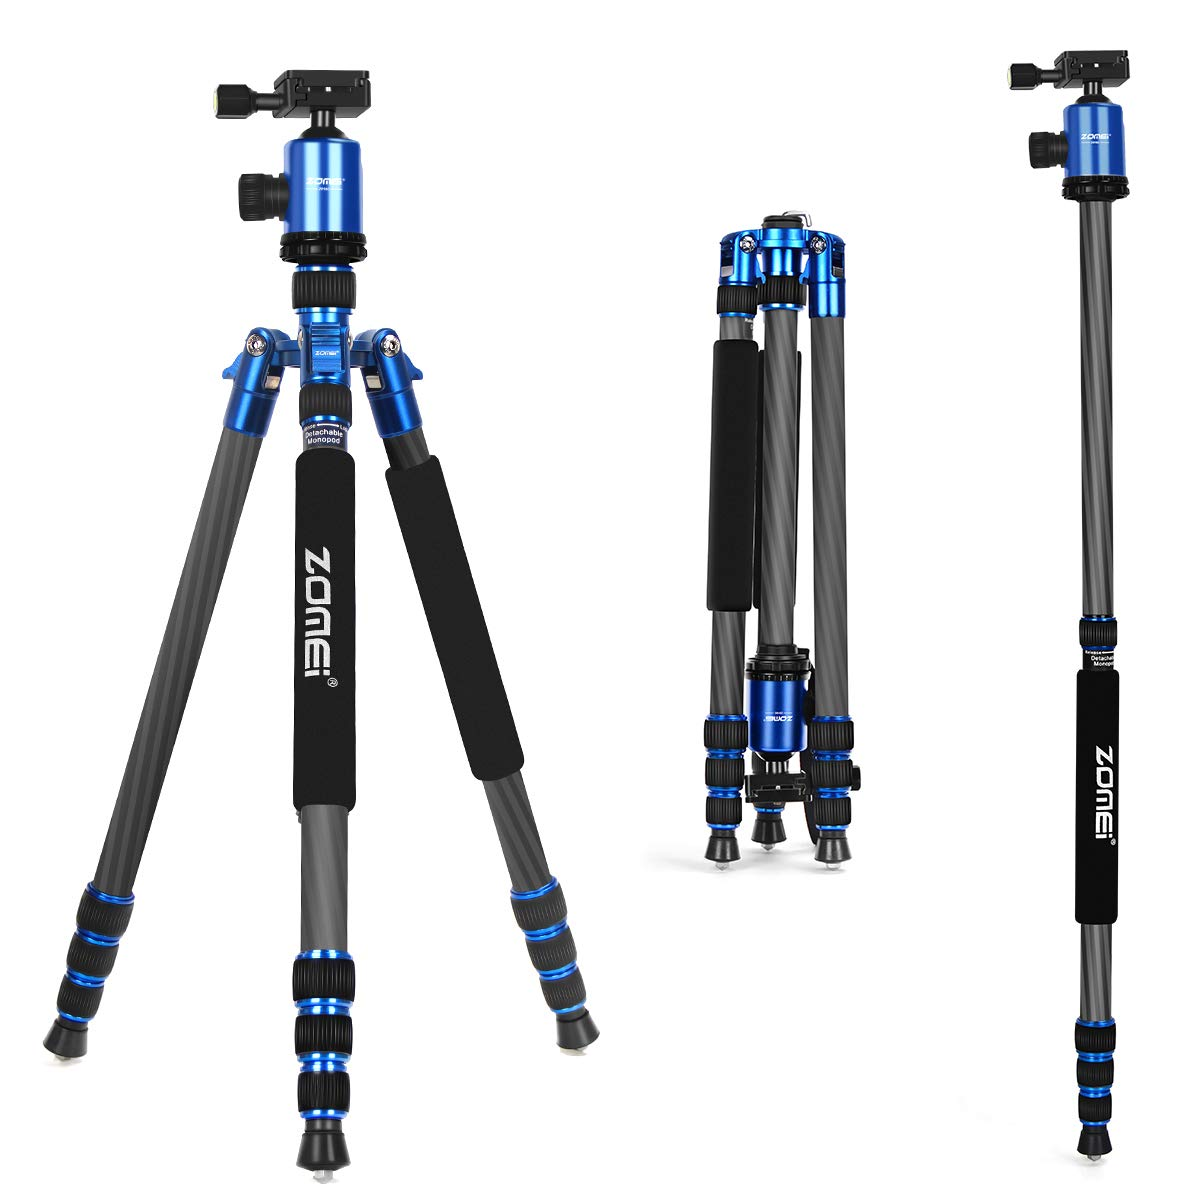 ZoMei Carbon Fiber Tripod,Tripod for Camera,66.5'' Camera Tripod Monopod with 360 Degree Ball Head and Quick Release Plate,Load up to 33 pounds for DSLR Cameras (Blue) by ZoMei